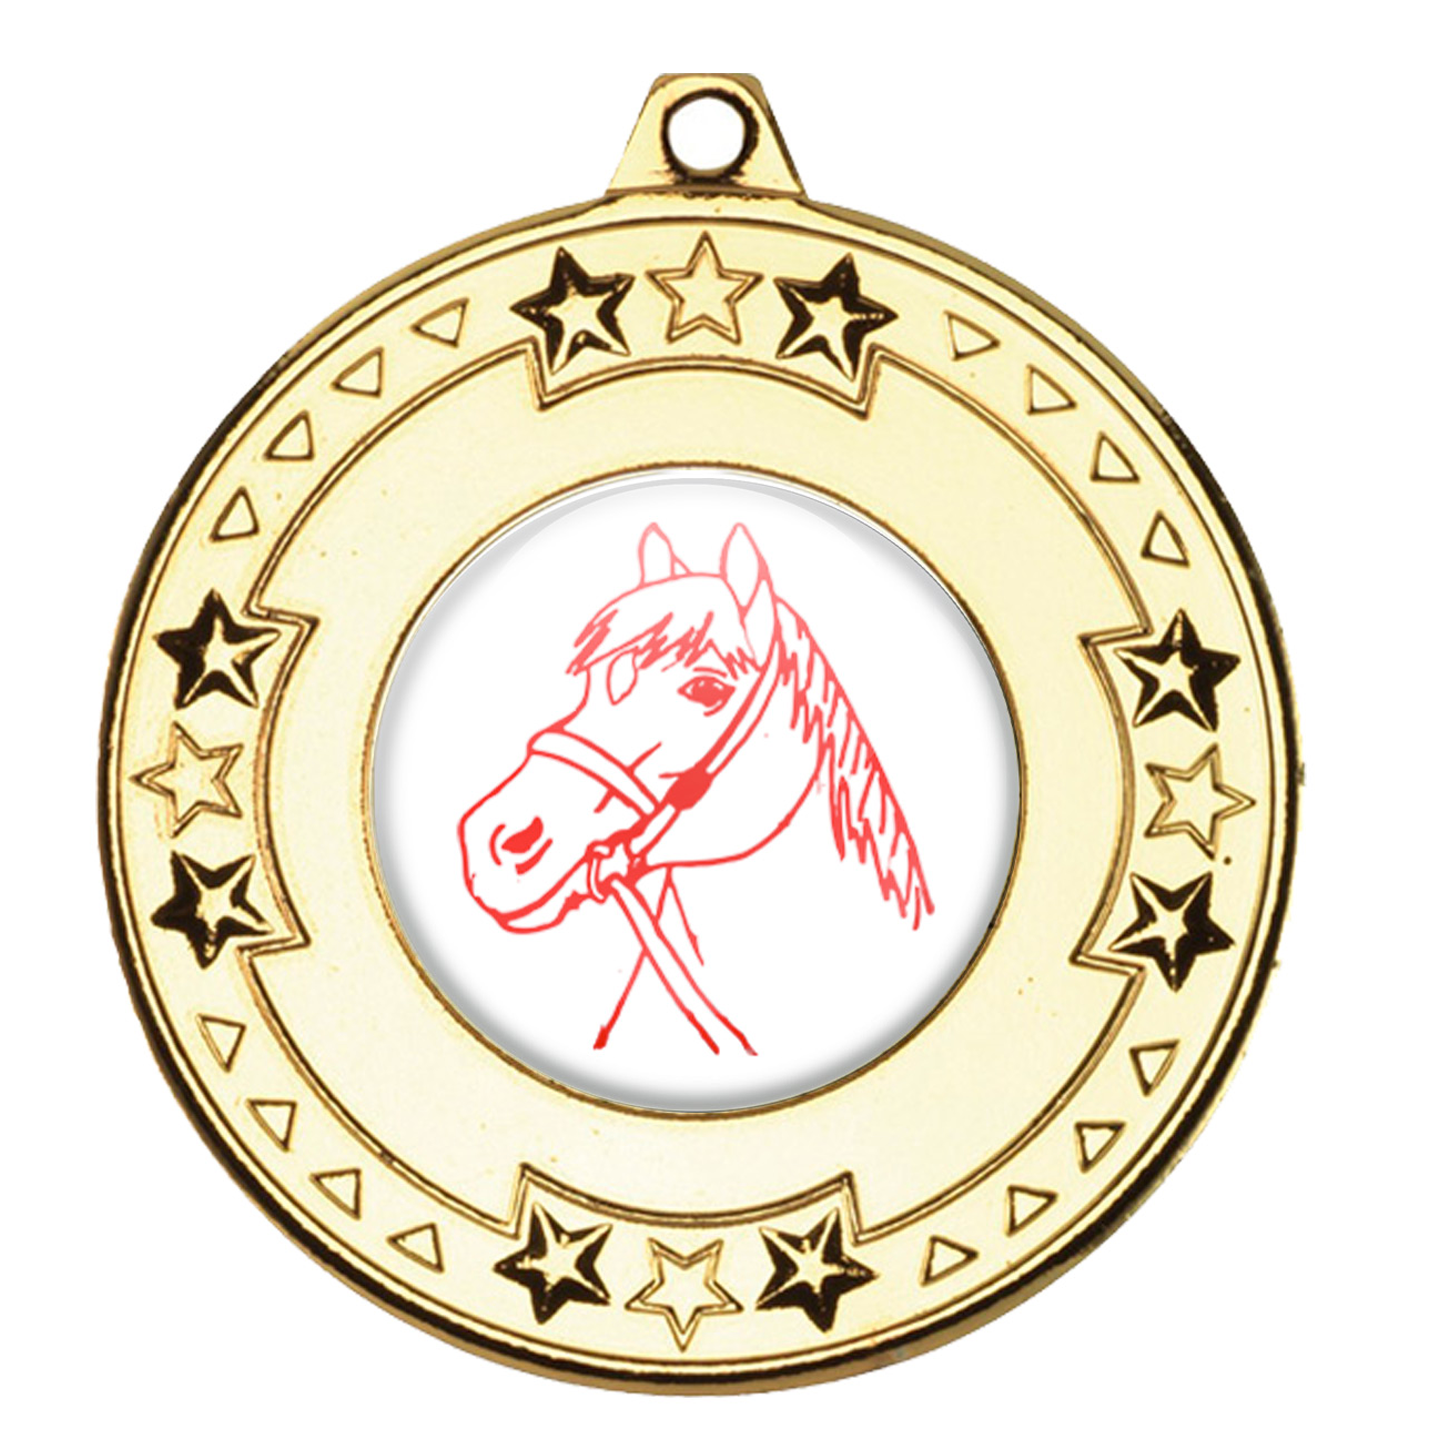 Horse Riding Medals & Ribbons